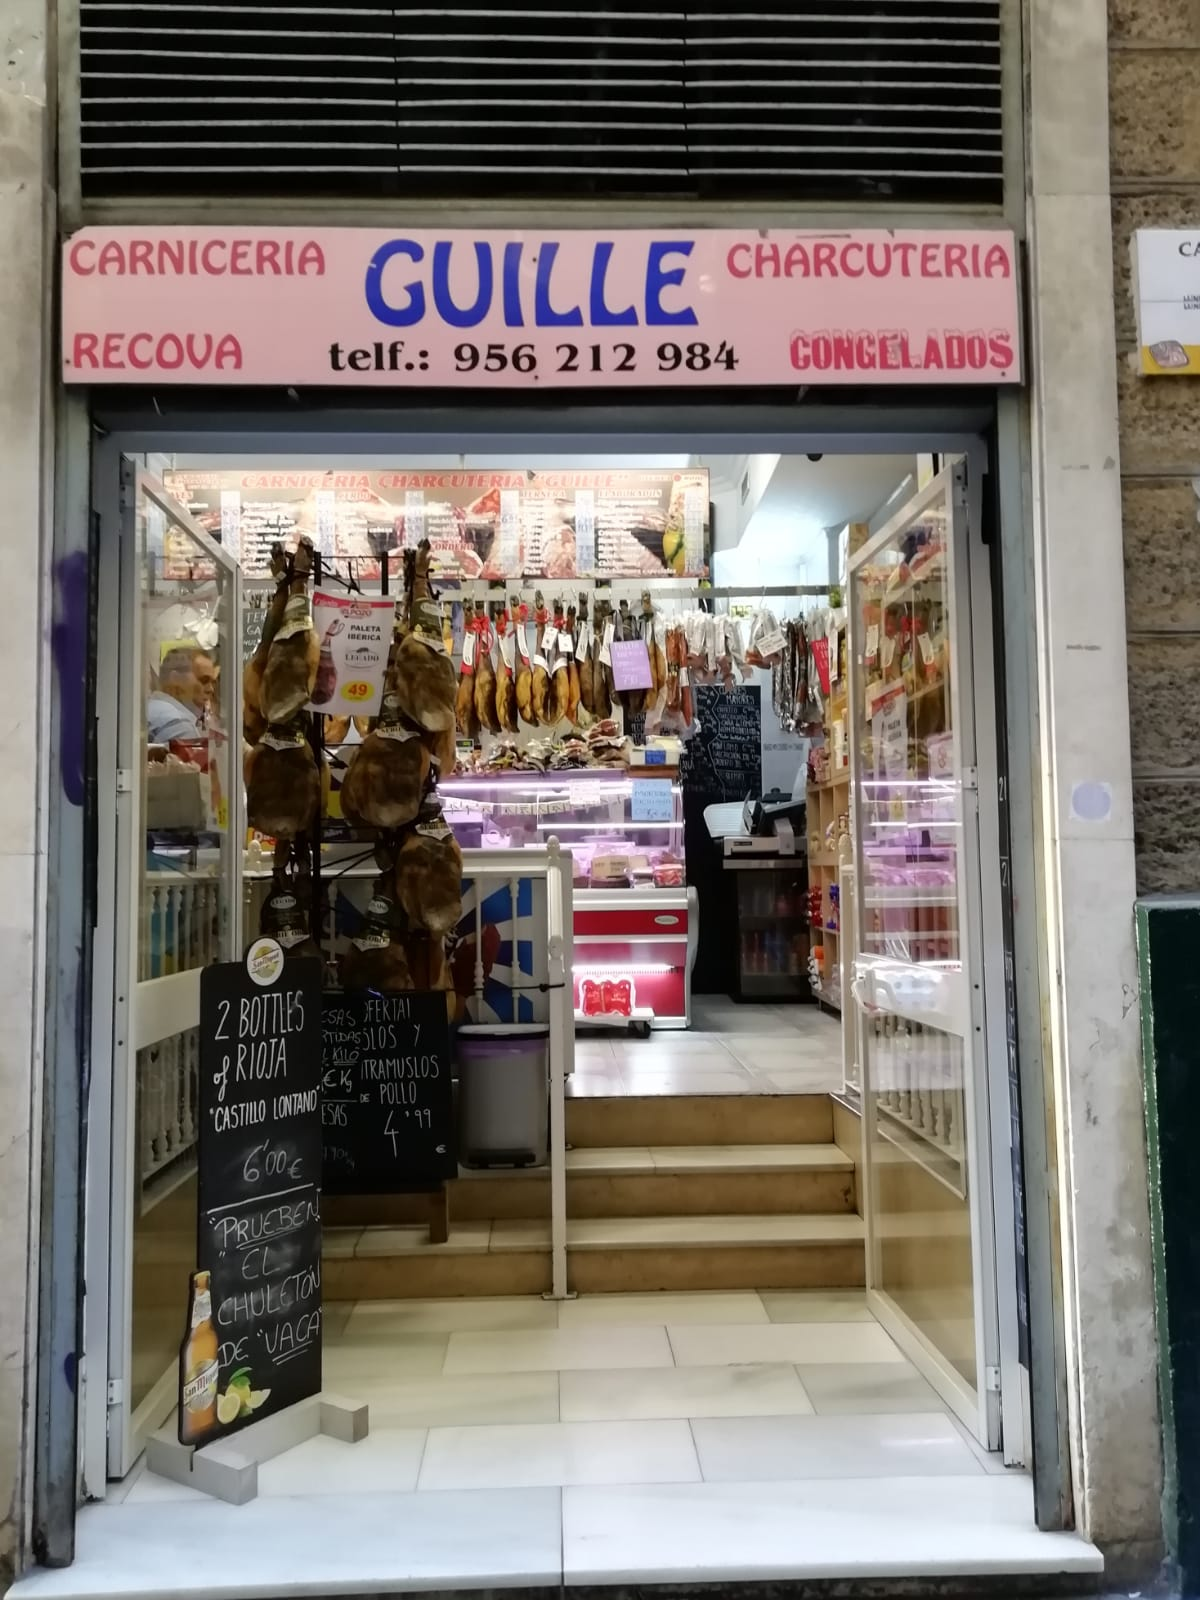 Exterior Carniceria Guille